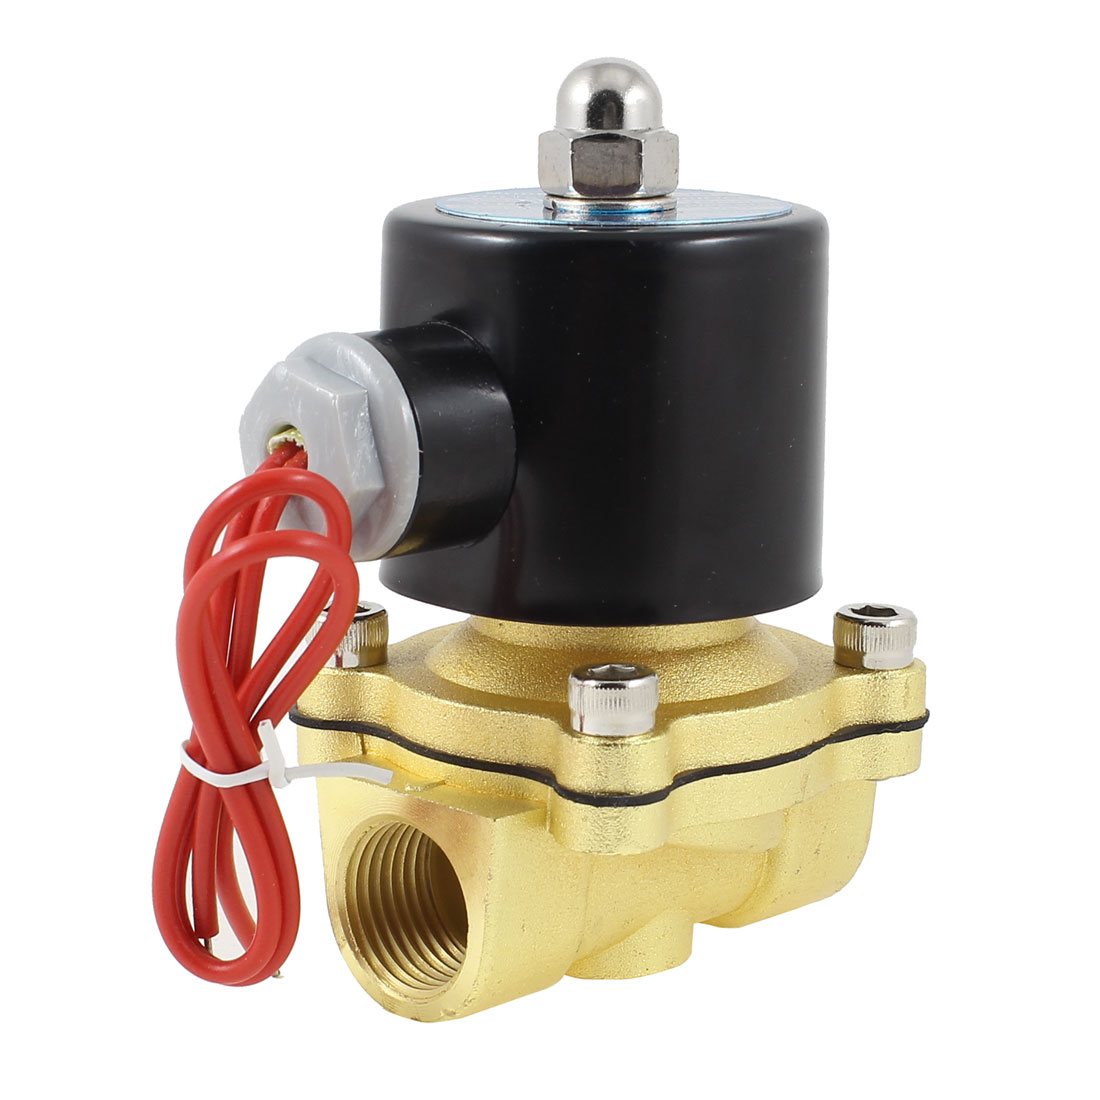 "2W-160-15 AC220V 16mm Pore 1/2"" Two Position Two Way Solenoid Water Valve"